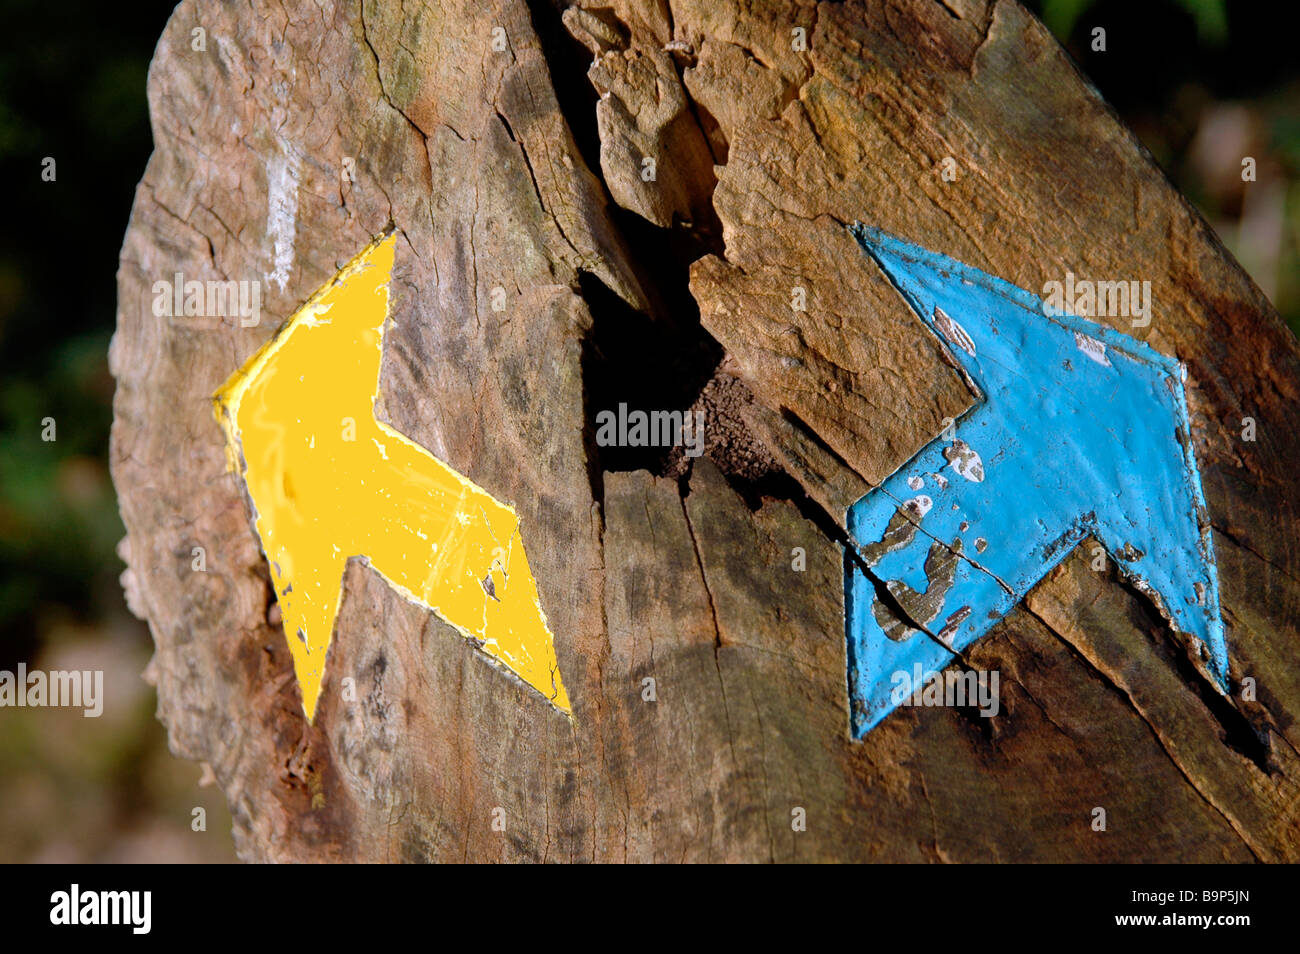 Painted arrows pointing opposite directions on a tree stump. - Stock Image